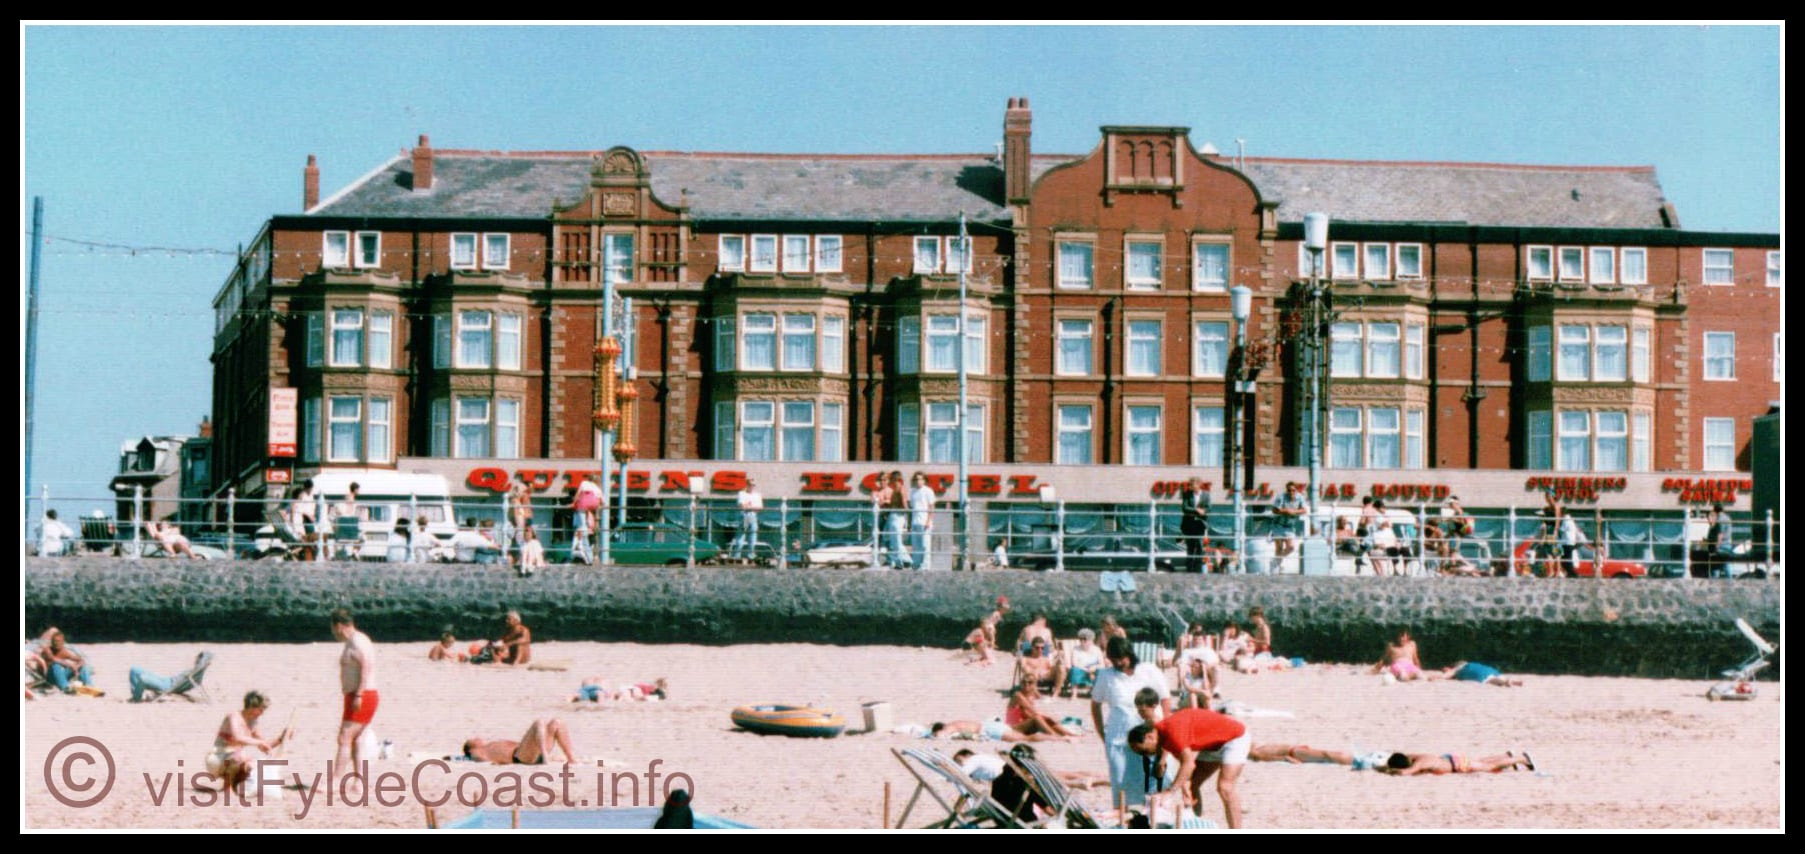 Blackpool South Beach at the Queens Hotel, c 1991. Our Old Blackpool Photos - archives from Visit Fylde Coast